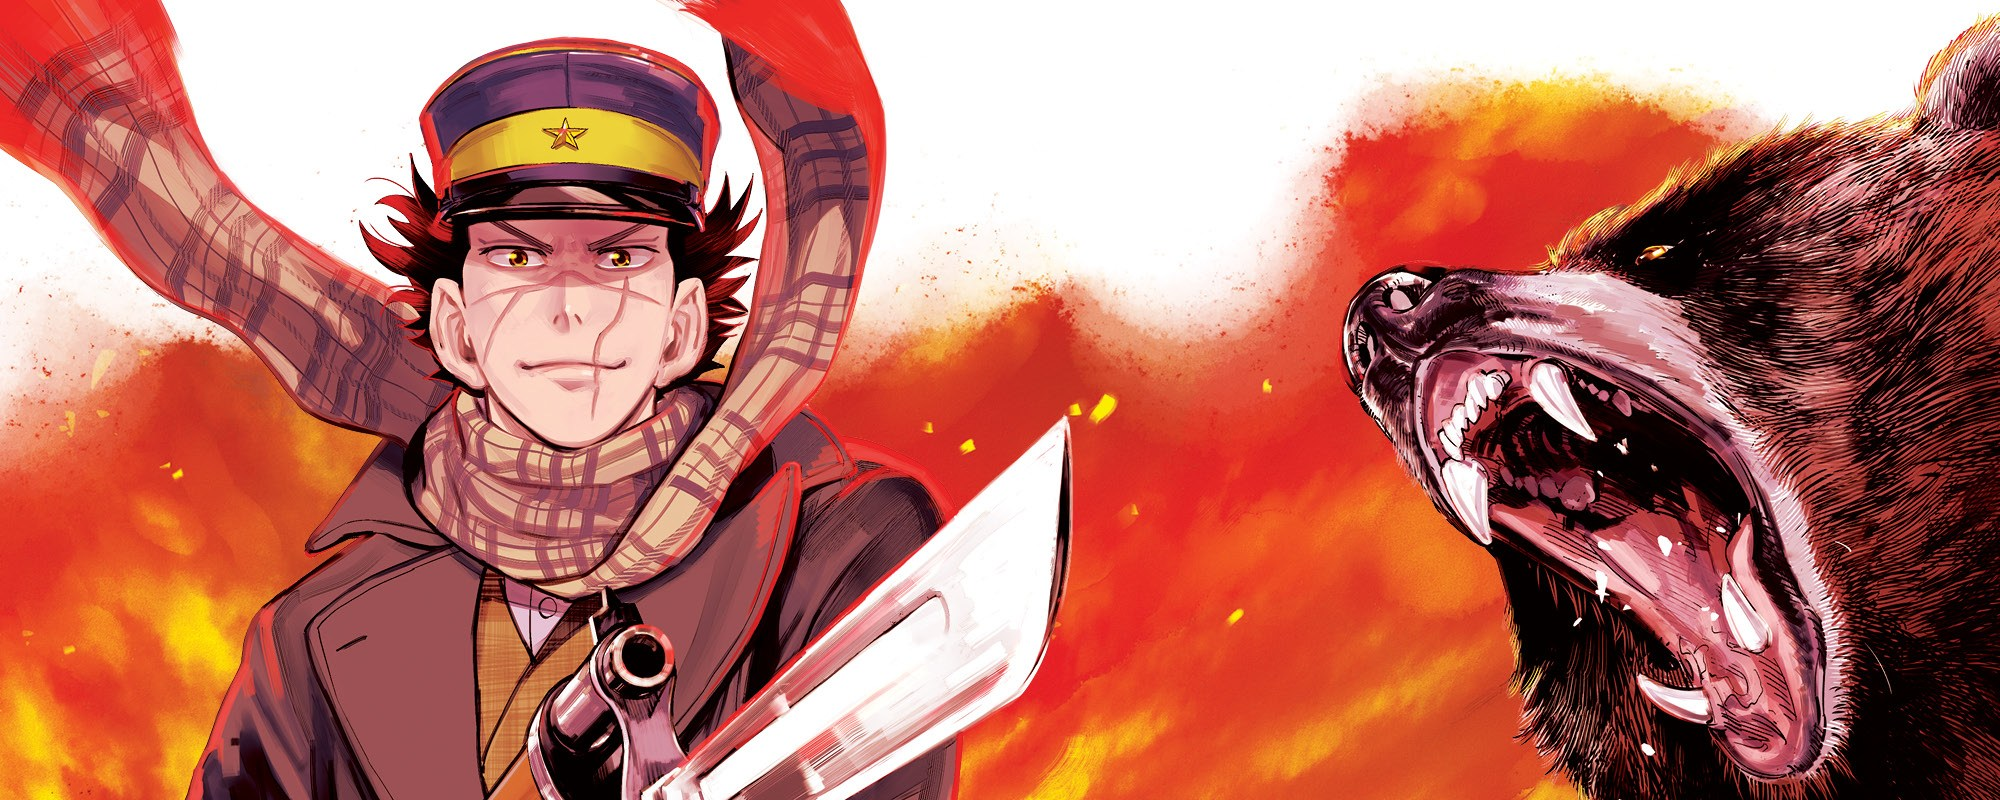 Cover image of Golden Kamuy - OVA